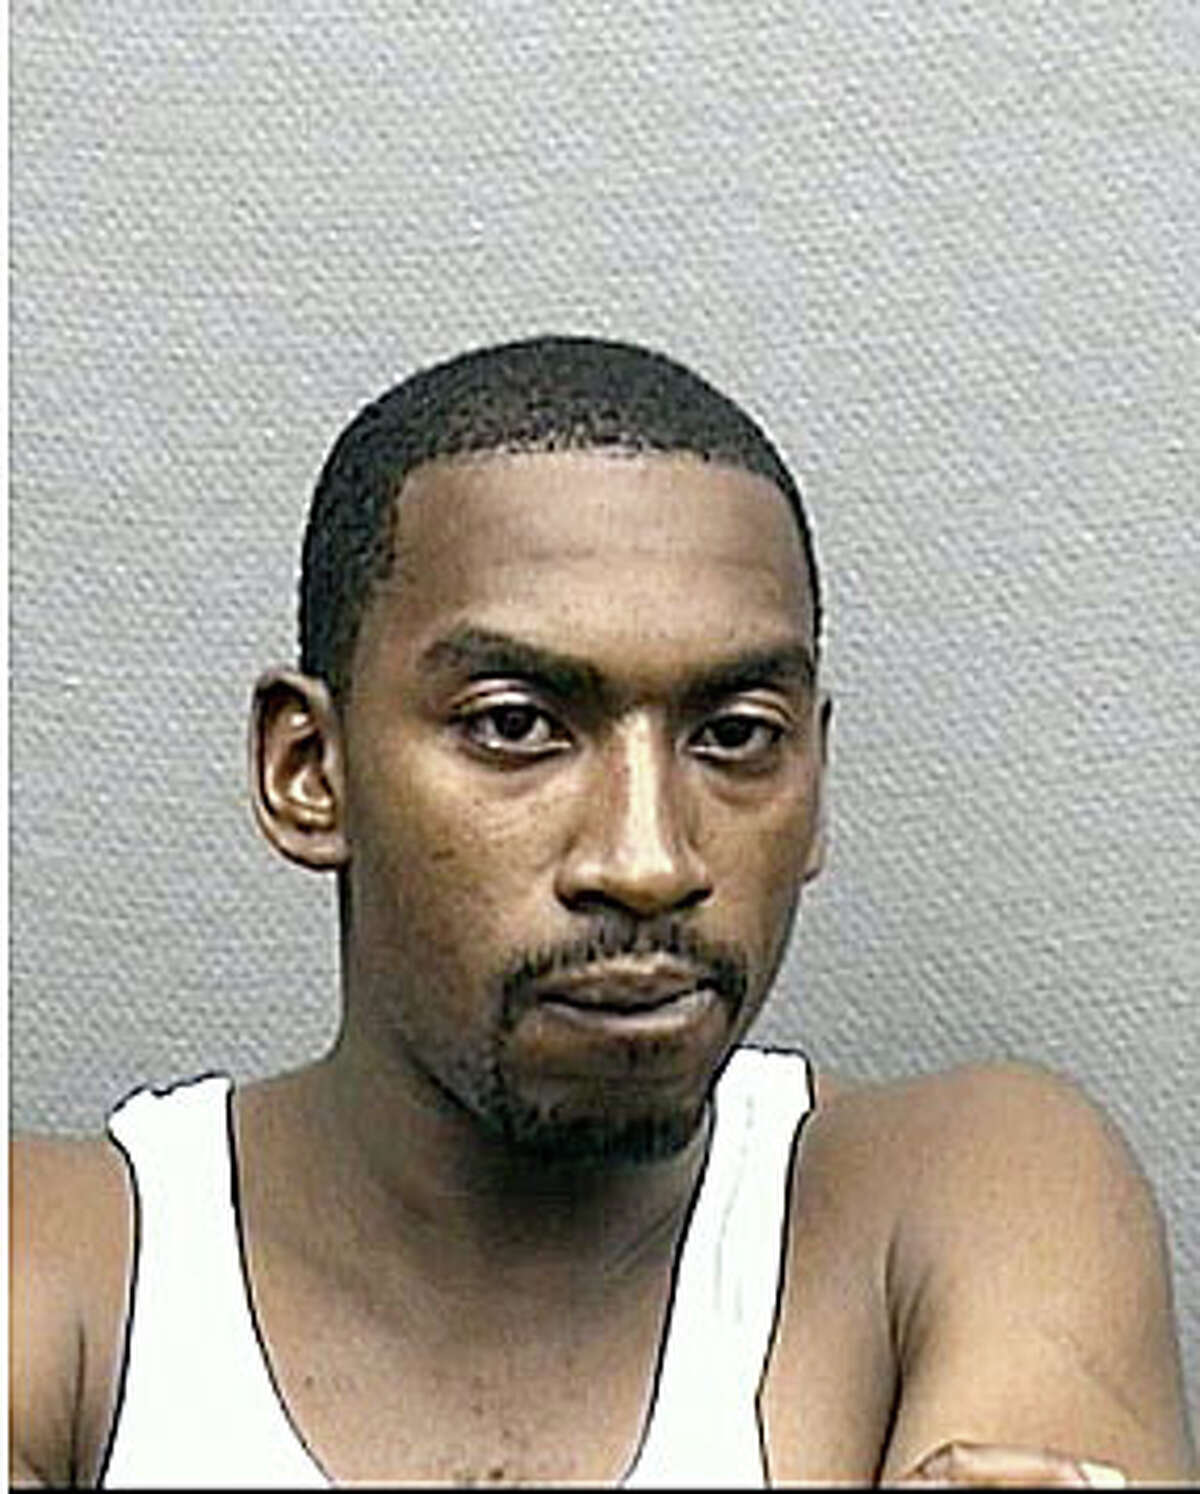 Jamel Lewis was booked on murder charges on July 4, 2008. He has been in jail for 5 years, 1 month.